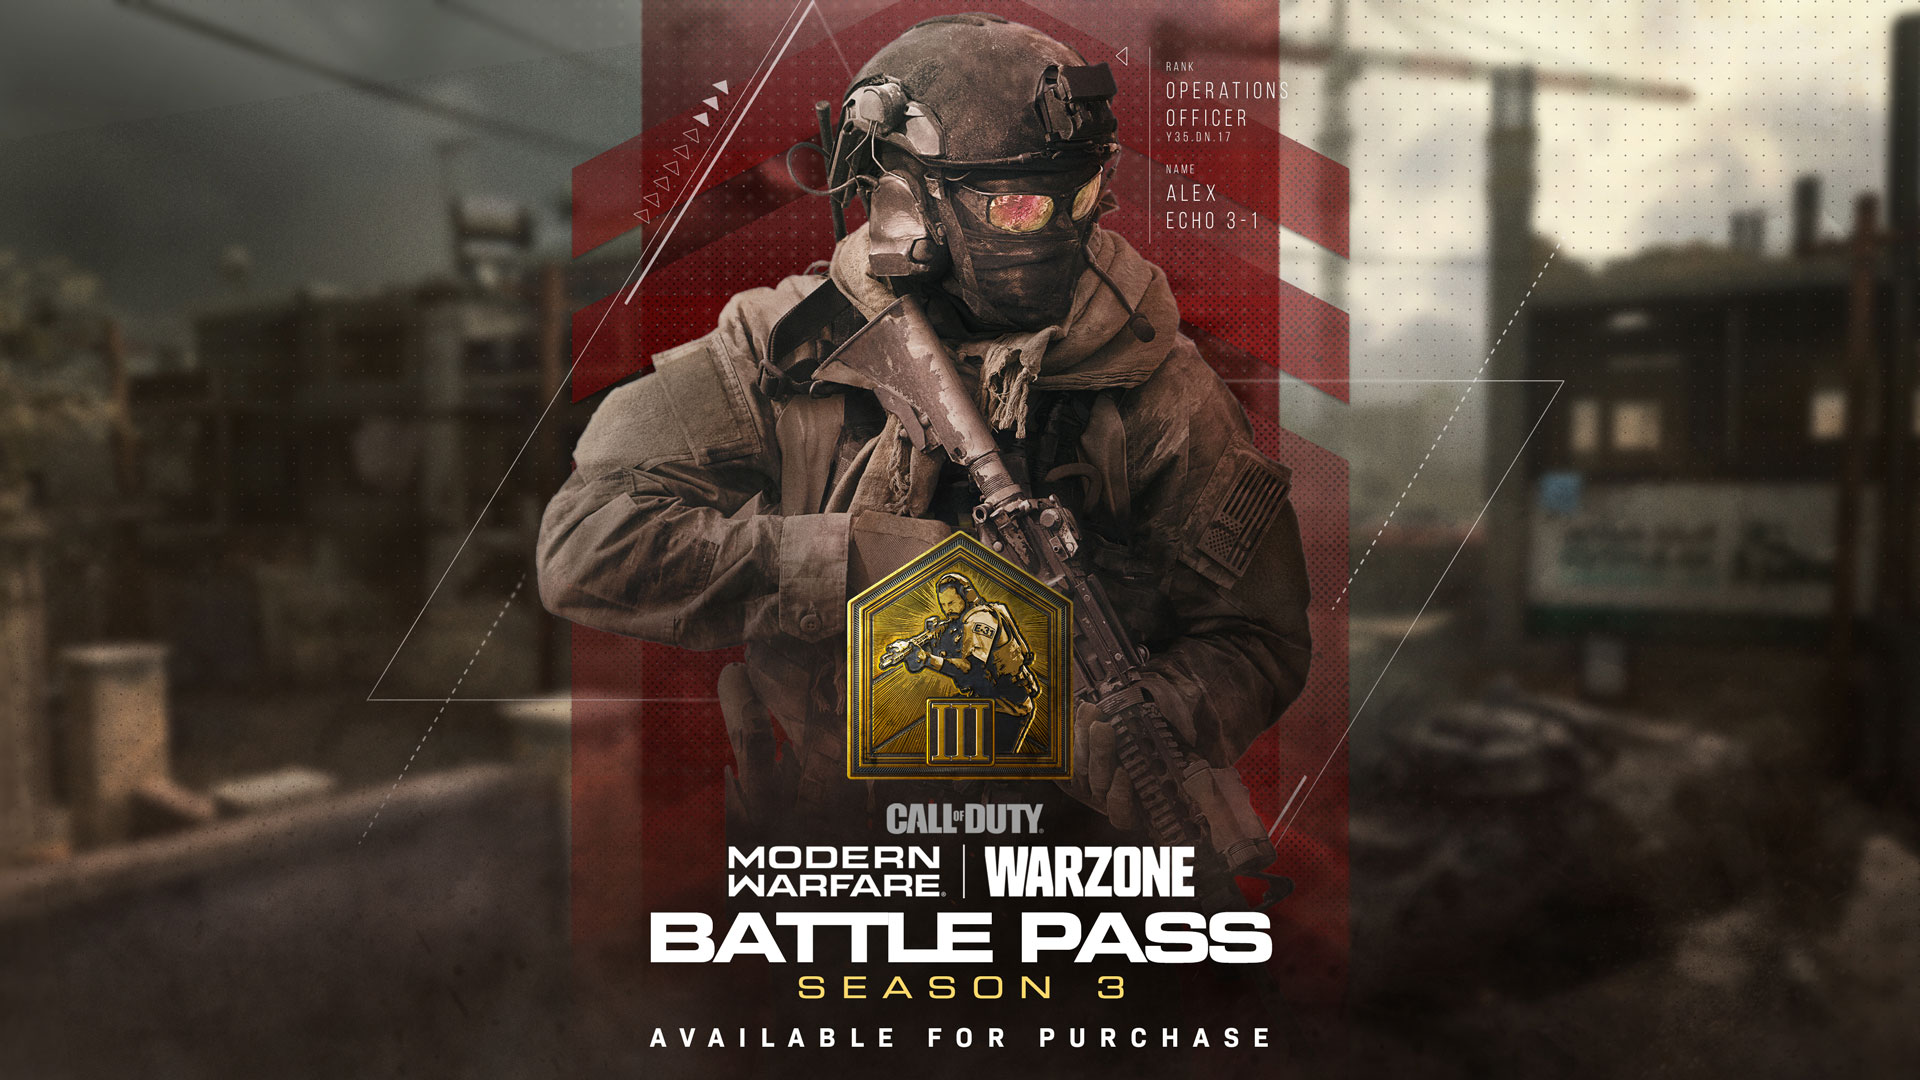 call of duty season 3 battlepass